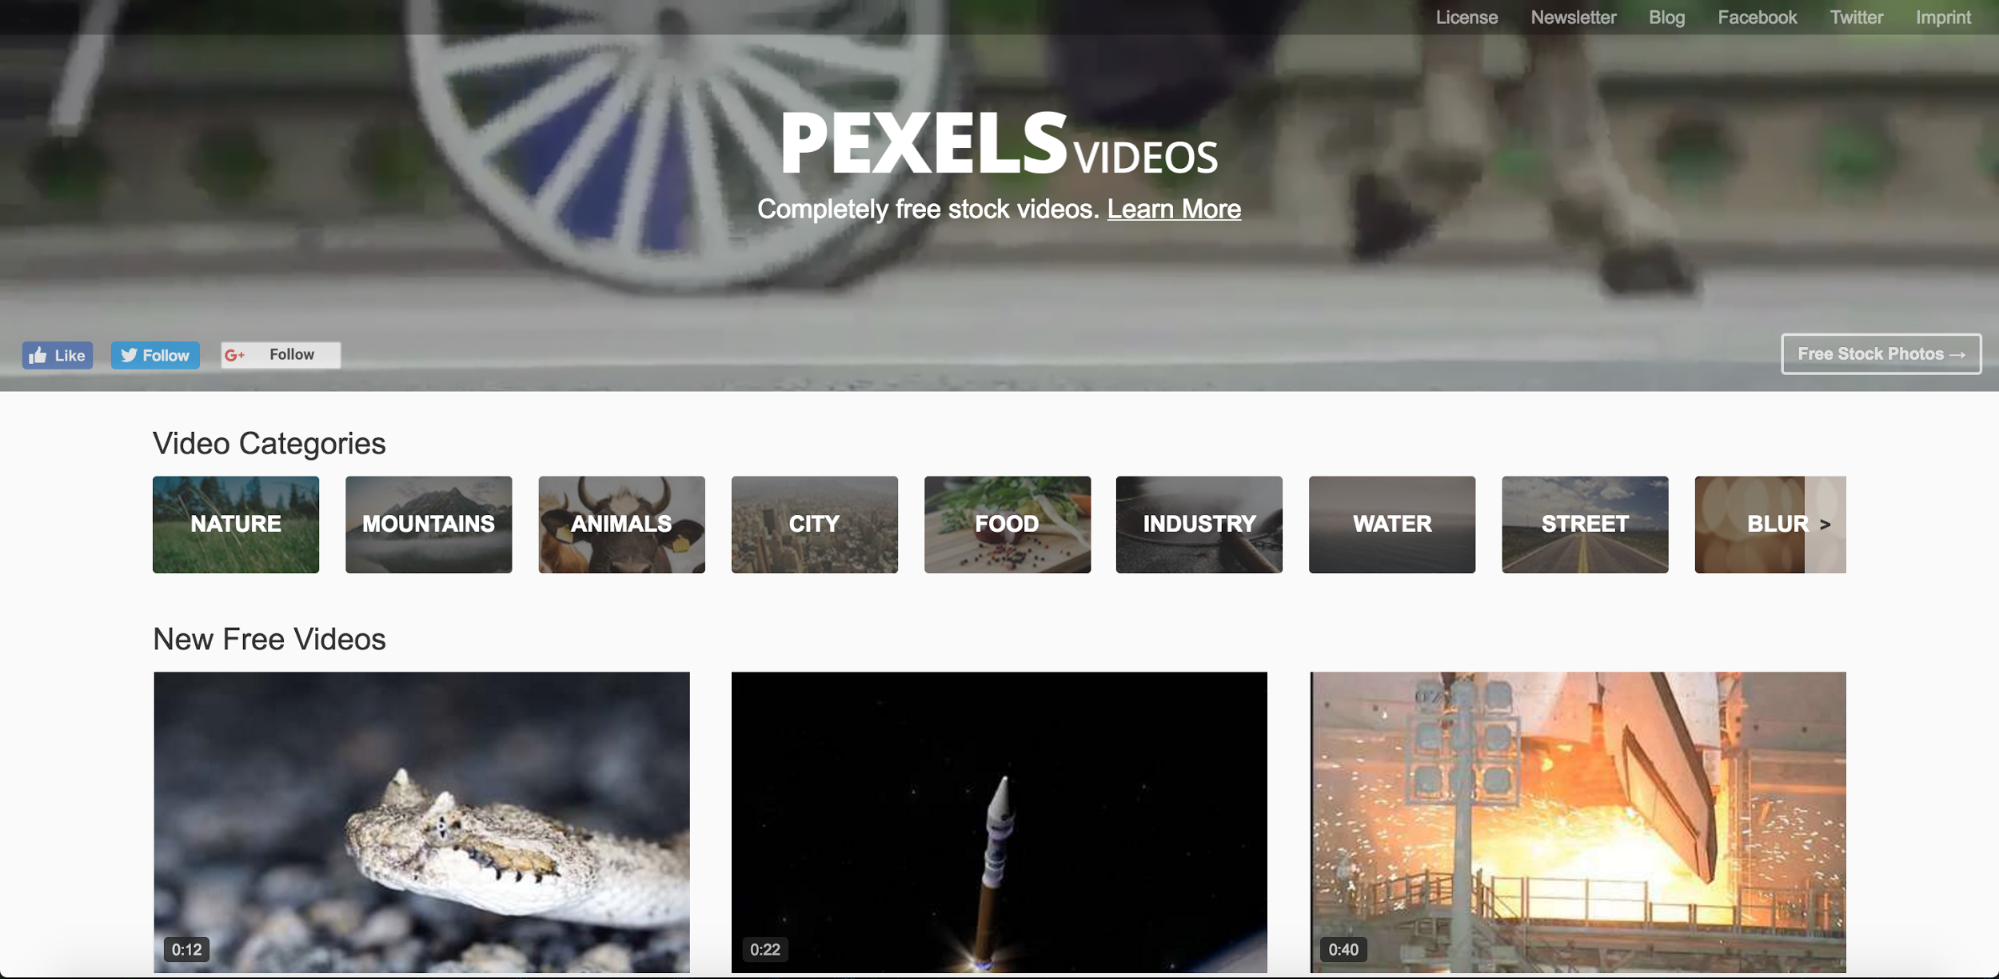 Pexels Videos hosts completely free stock videos